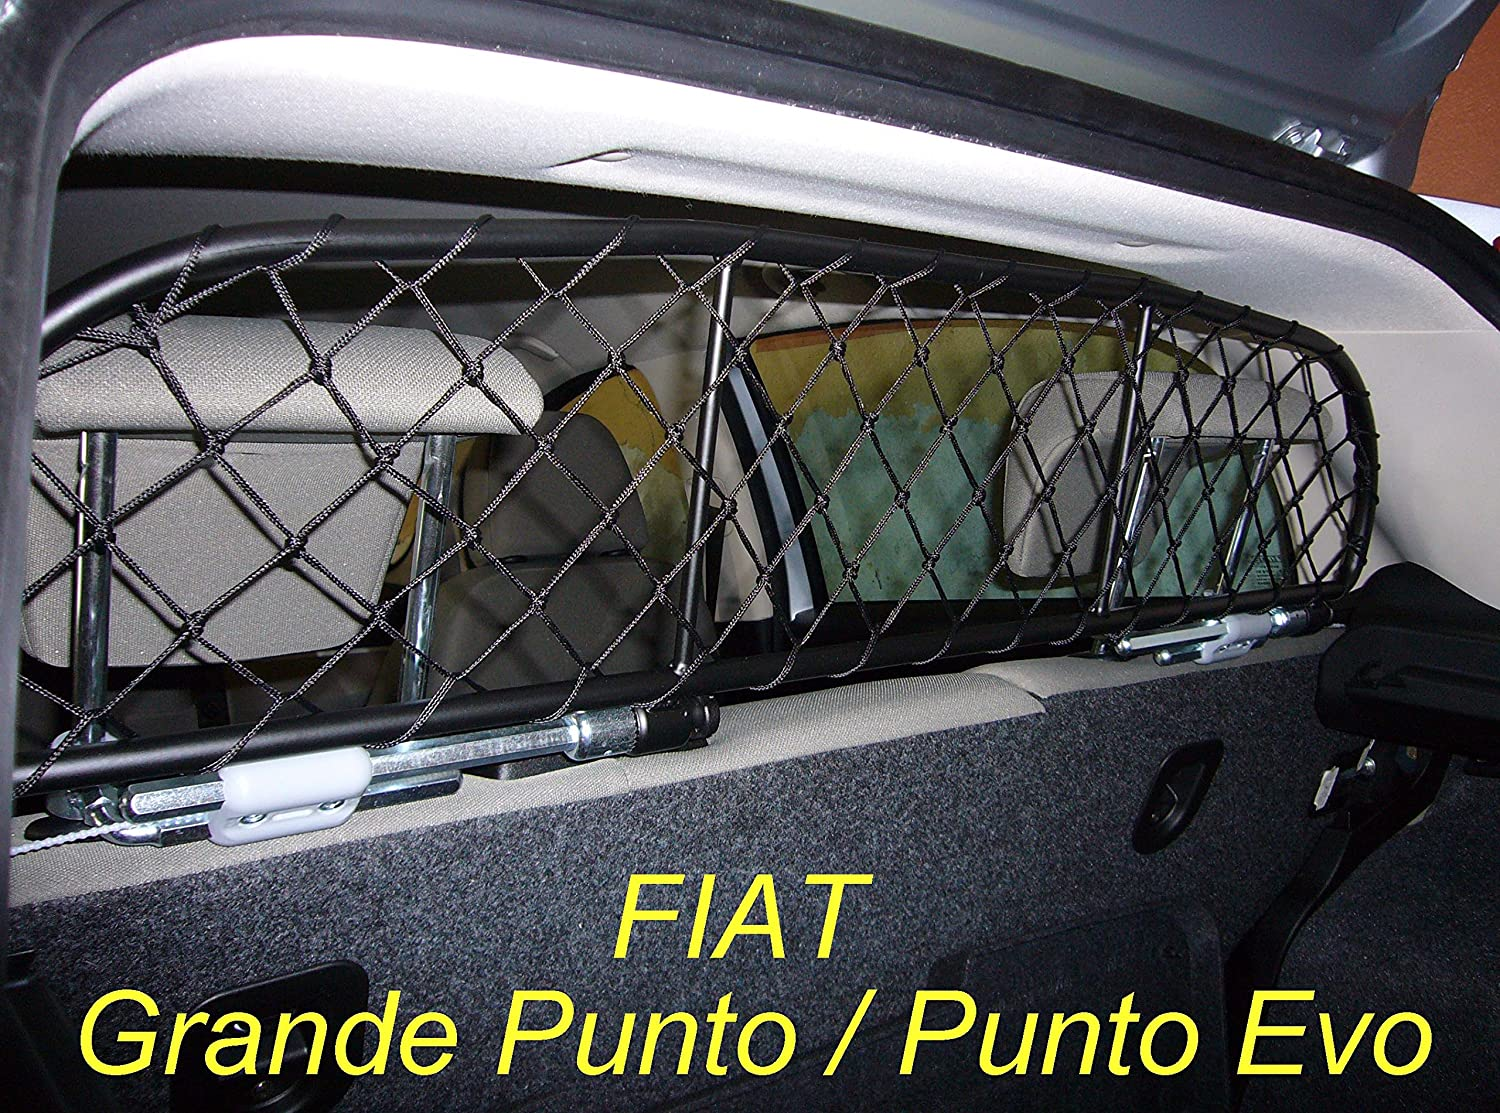 Dog Guard, Pet Barrier Net and Screen Ergotech RDA65-XXS for FIAT Grande Punto and Punto Evo, for Luggage and Pets